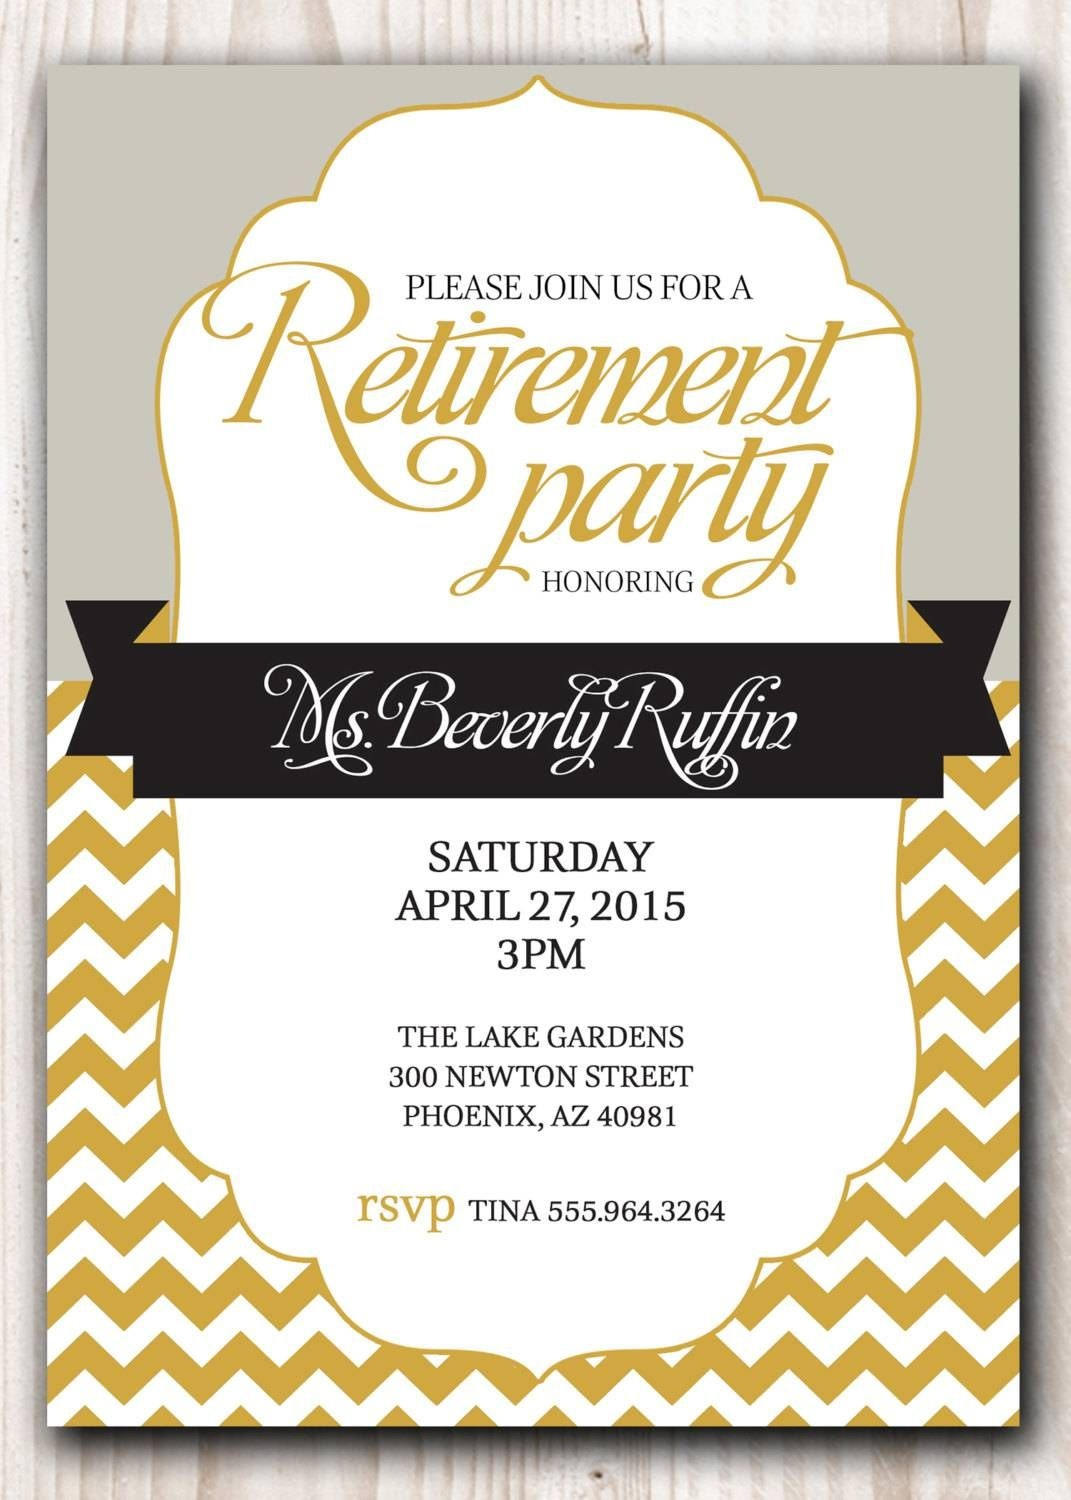 Retirement Party Invitation Template Microsoft - Demir.iso-Consulting.co - Free Printable Retirement Party Invitations